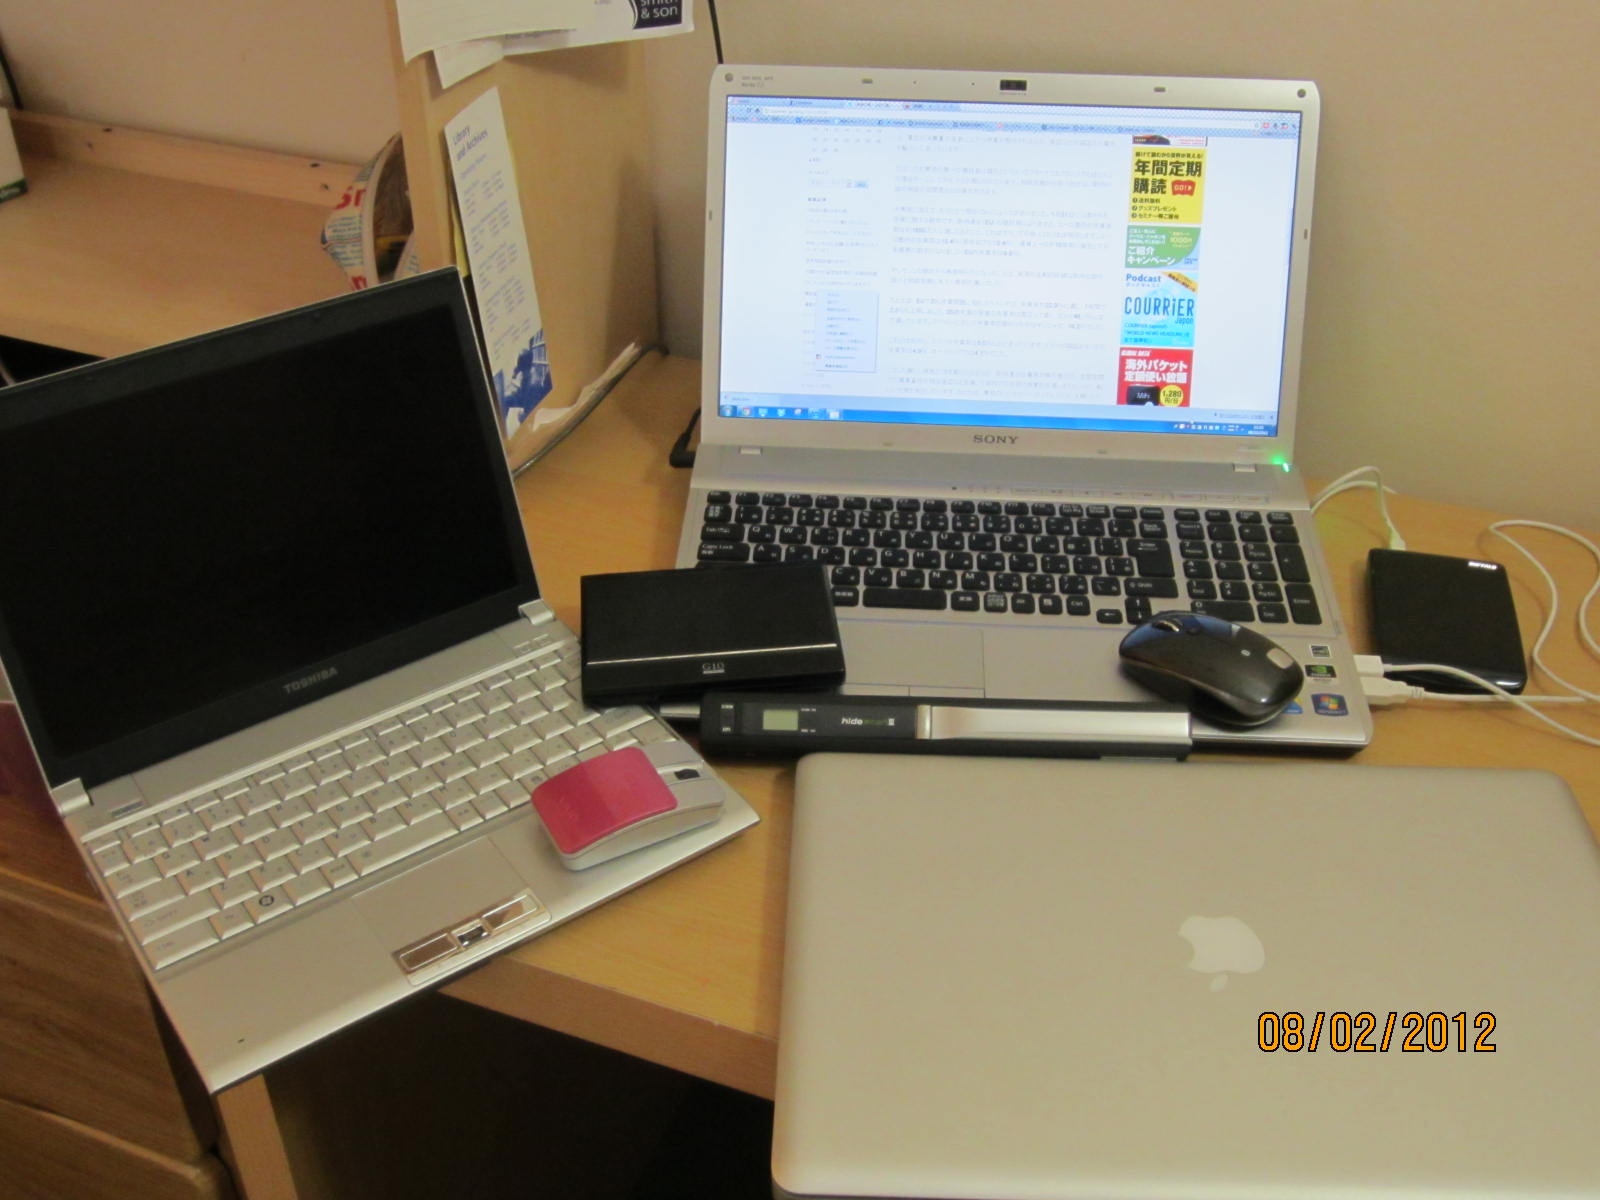 image of multiple laptops and external hard drives.